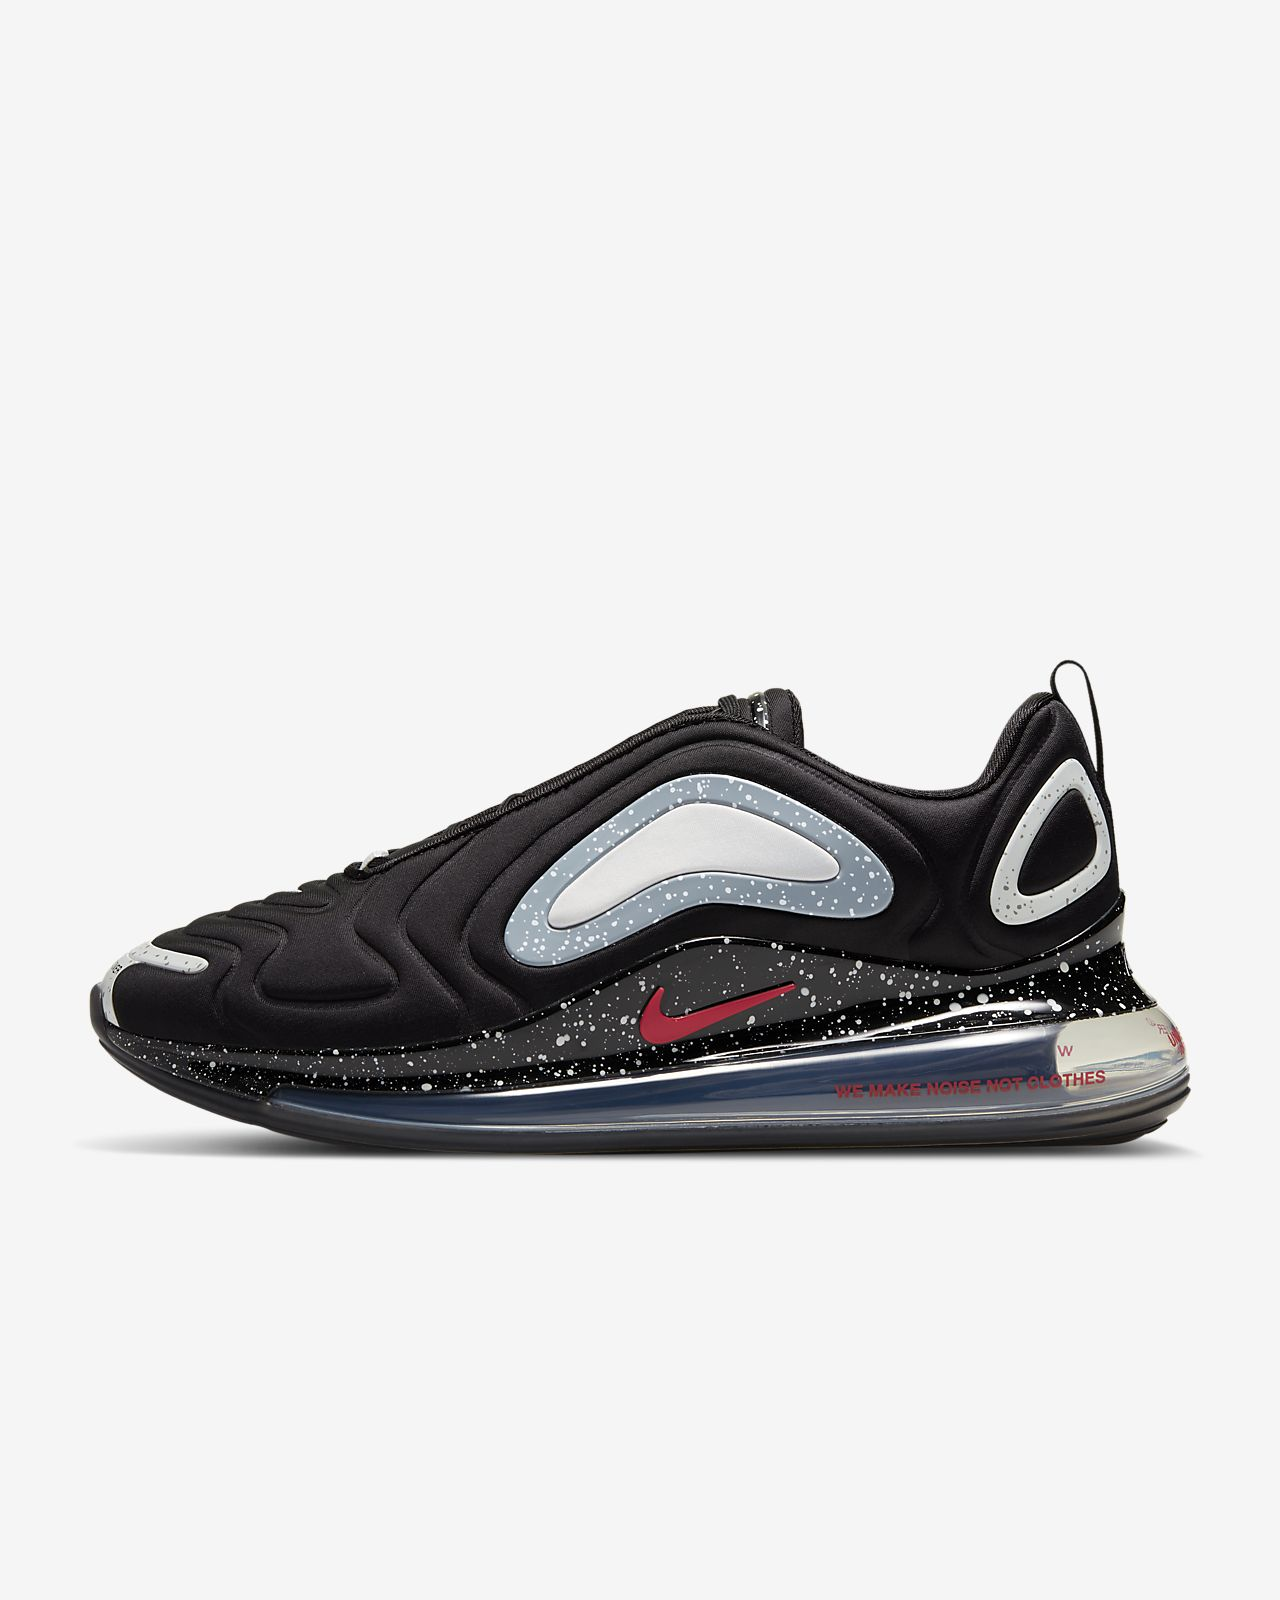 Undercover Nike Air Max 720 Black CN2408 001 University Red